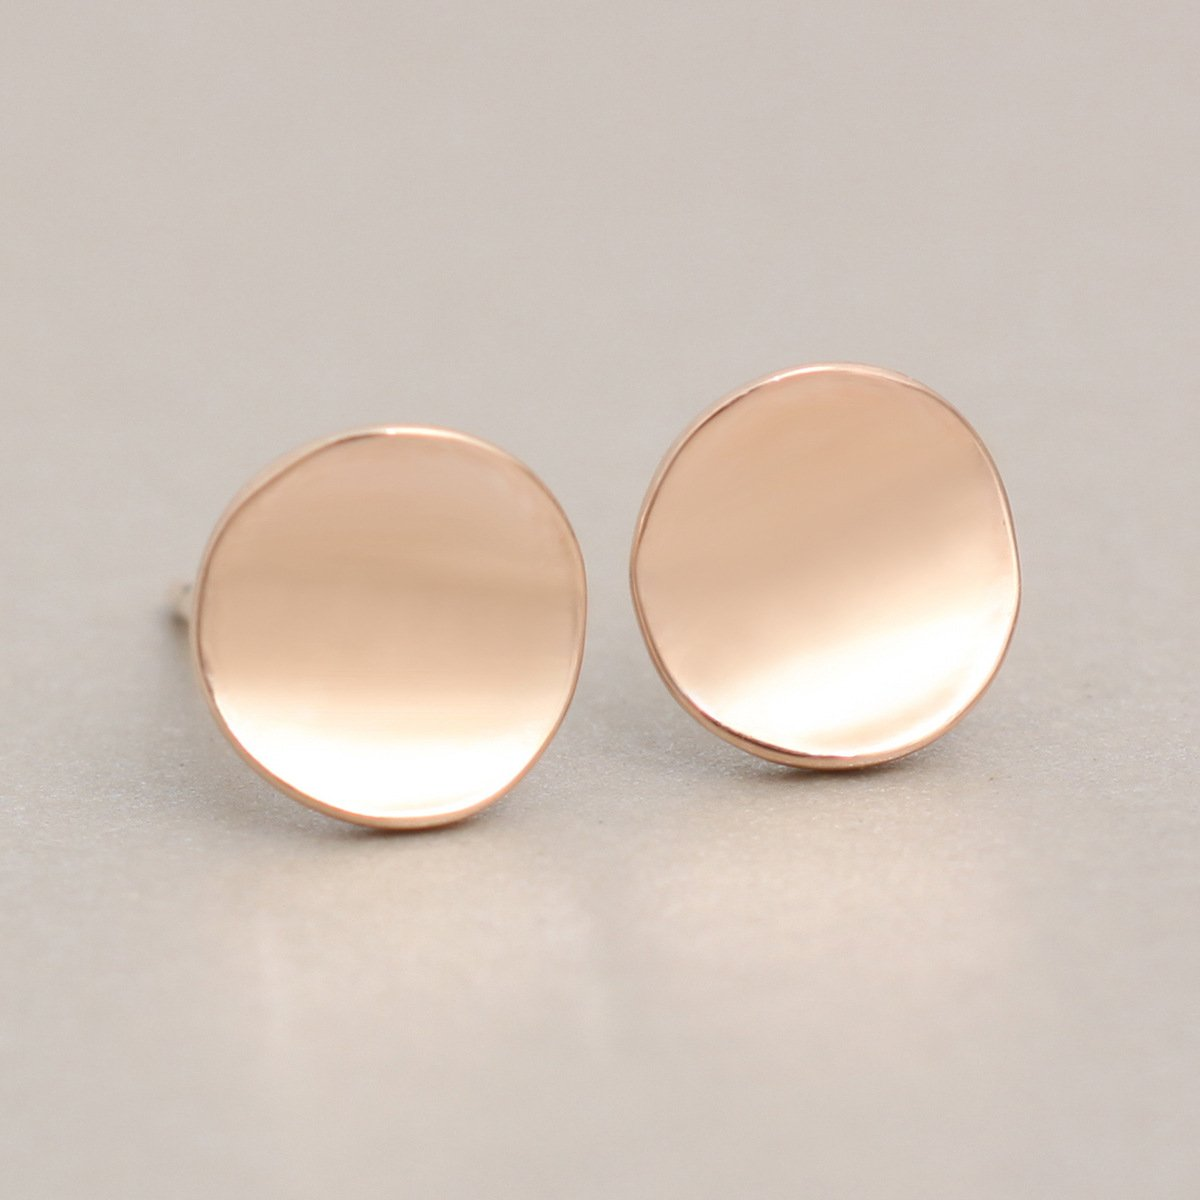 WLLAY Minimalist Tiny Round Circle Disc Stud Earrings for Women and Girl